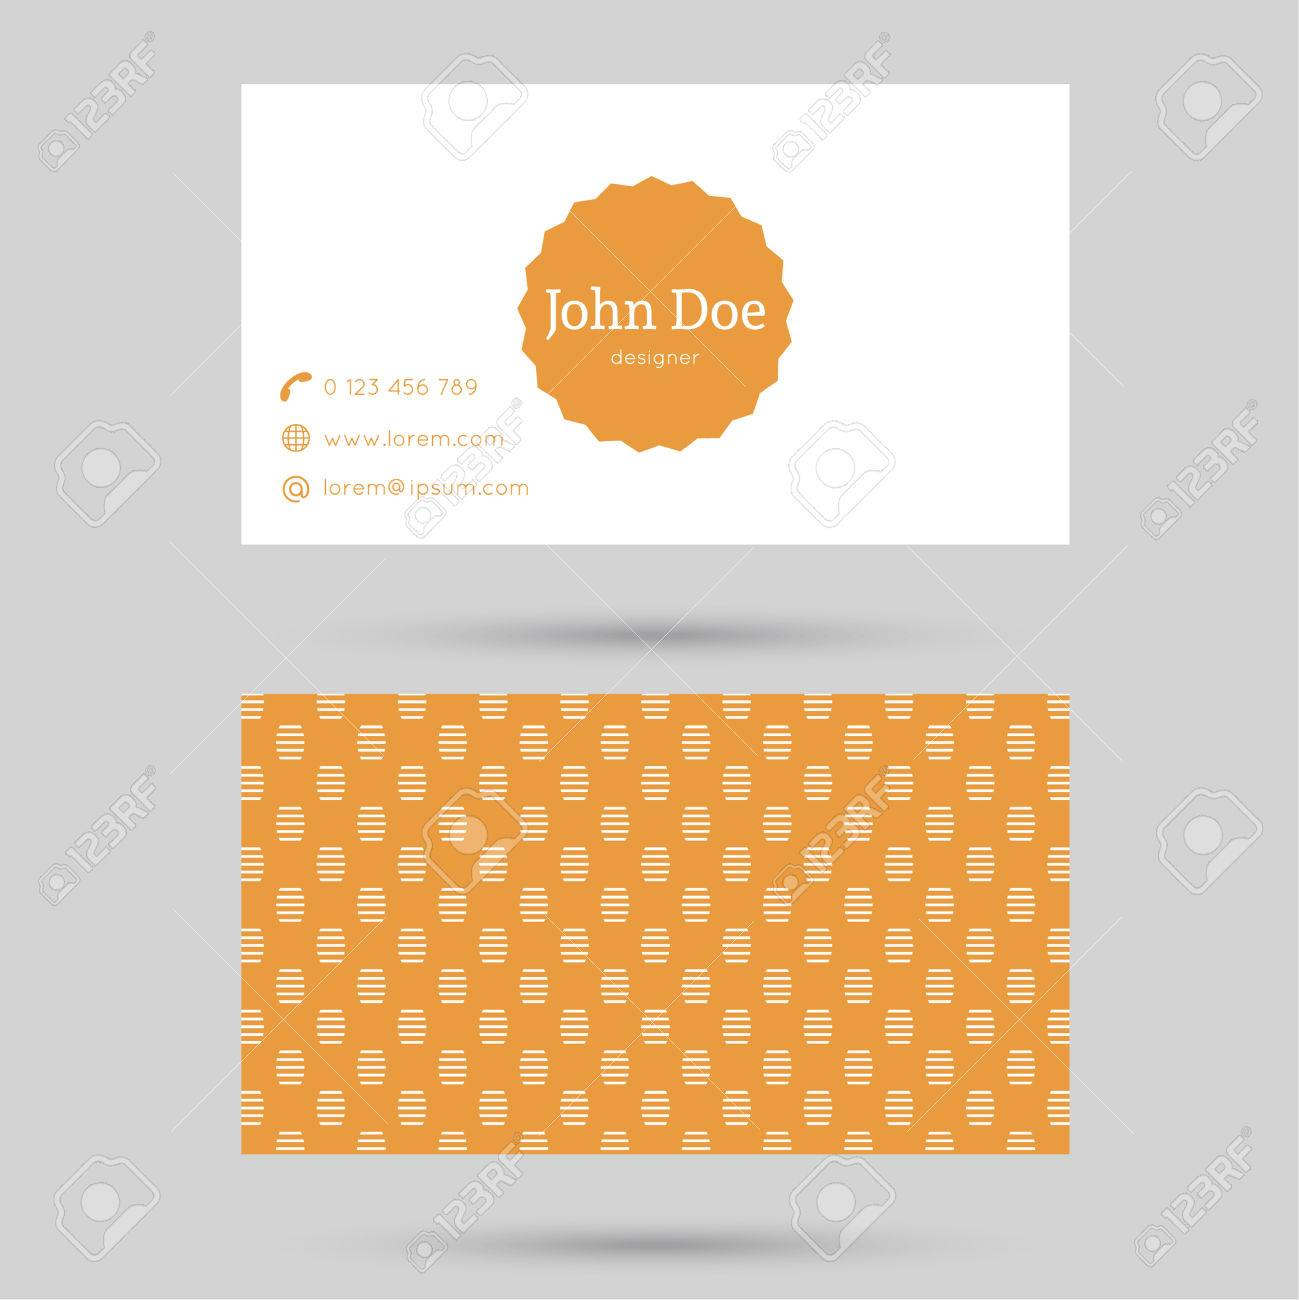 Trendy business card template with vintage label and elegant trendy business card template with vintage label and elegant seamless pattern minimalism design gold colourmoves